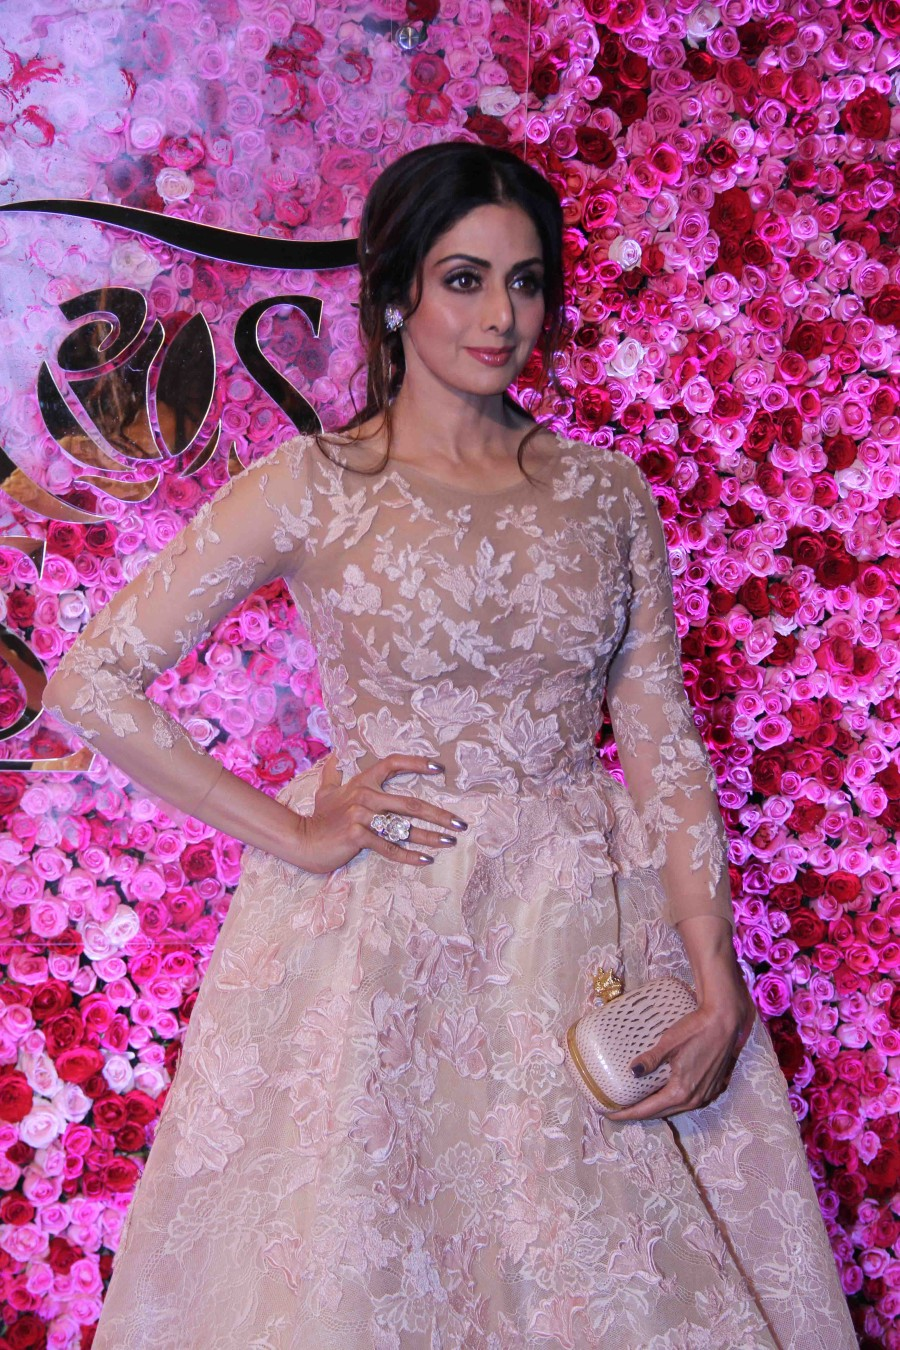 Anushka Sharma,Sridevi Boney Kapoor,Jacqueline Fernandez,Lux Golden Rose Awards 2016,Anushka Sharma at Lux Golden Rose Awards 2016,Sridevi Boney Kapoor at Lux Golden Rose Awards 2016,Jacqueline Fernandez at Lux Golden Rose Awards 2016